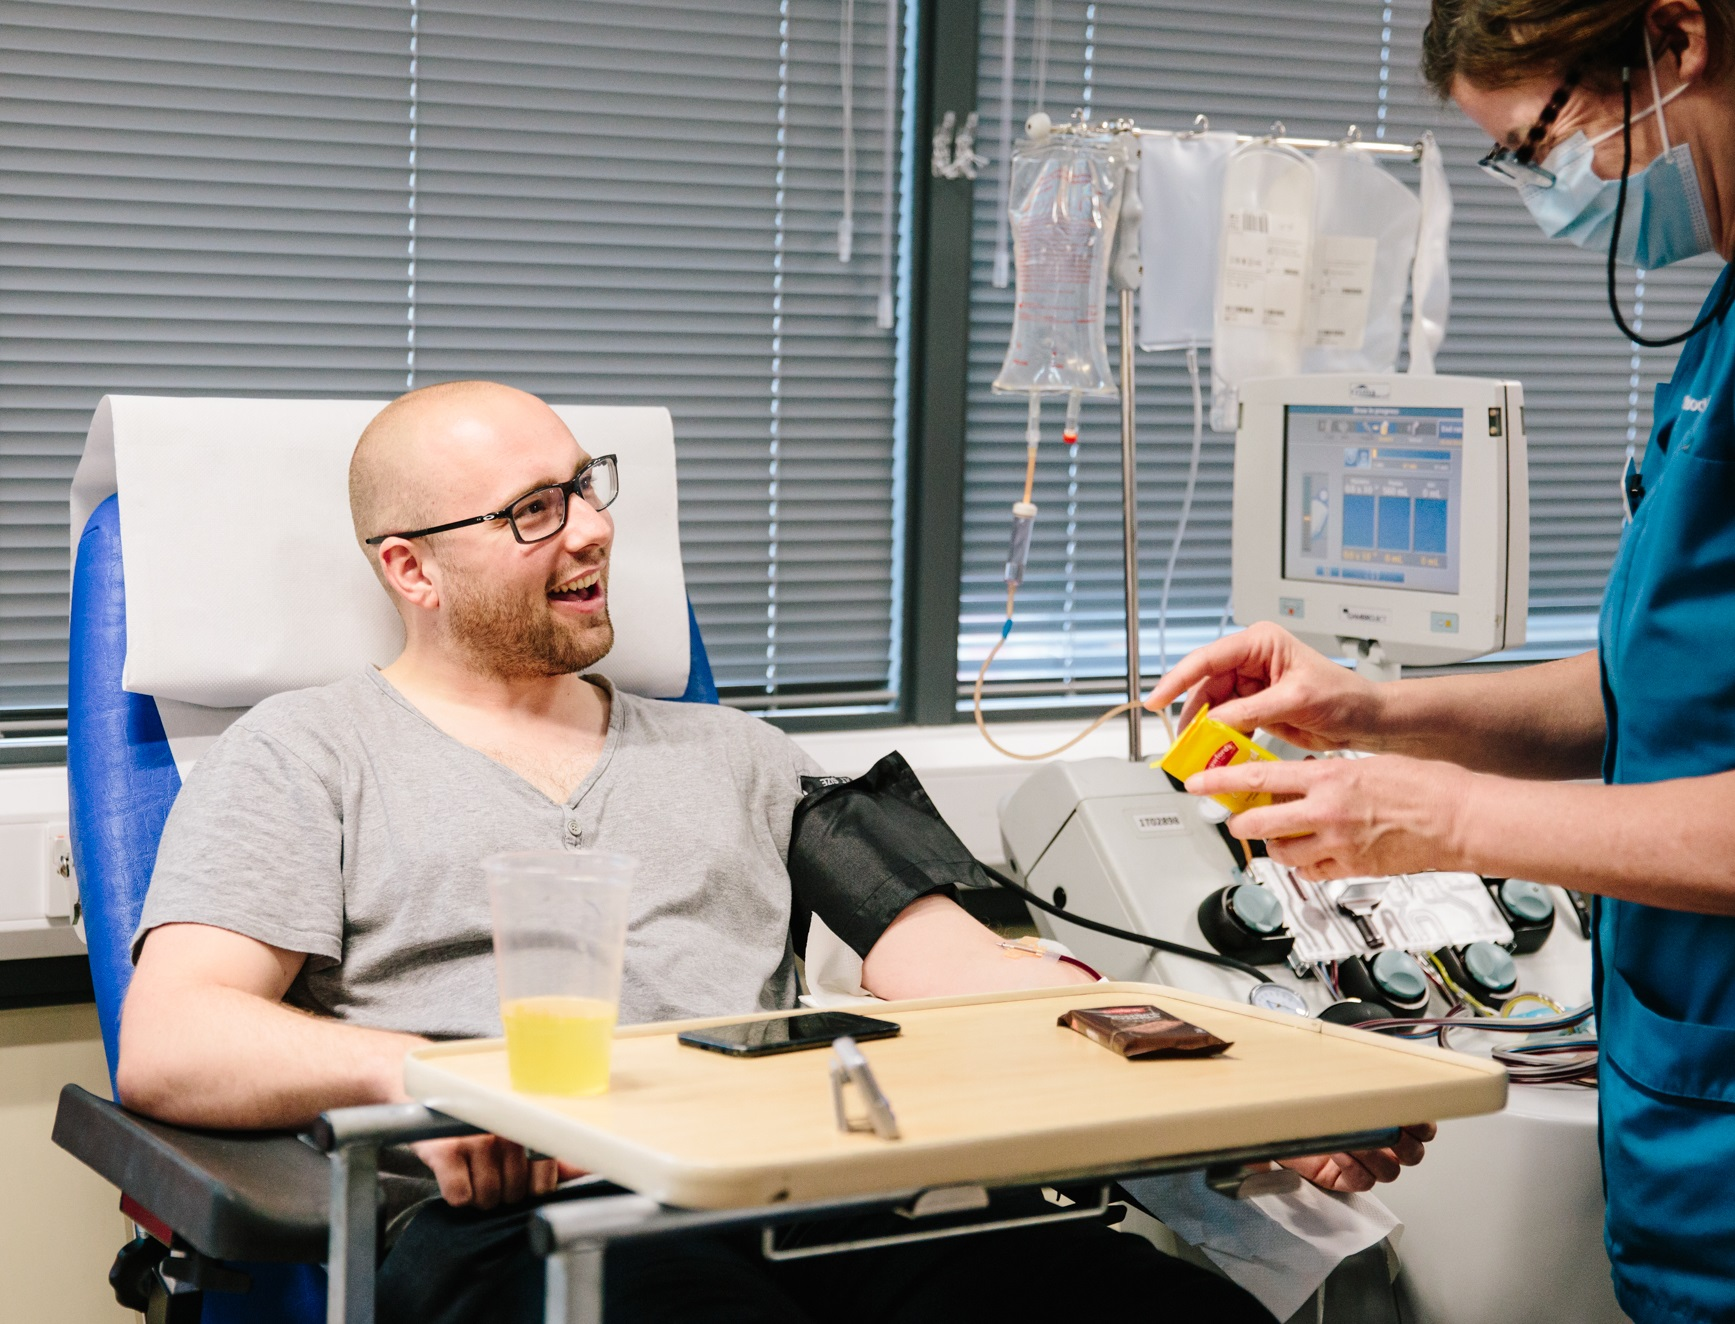 A donor talks to a donor carer as he gives plasma